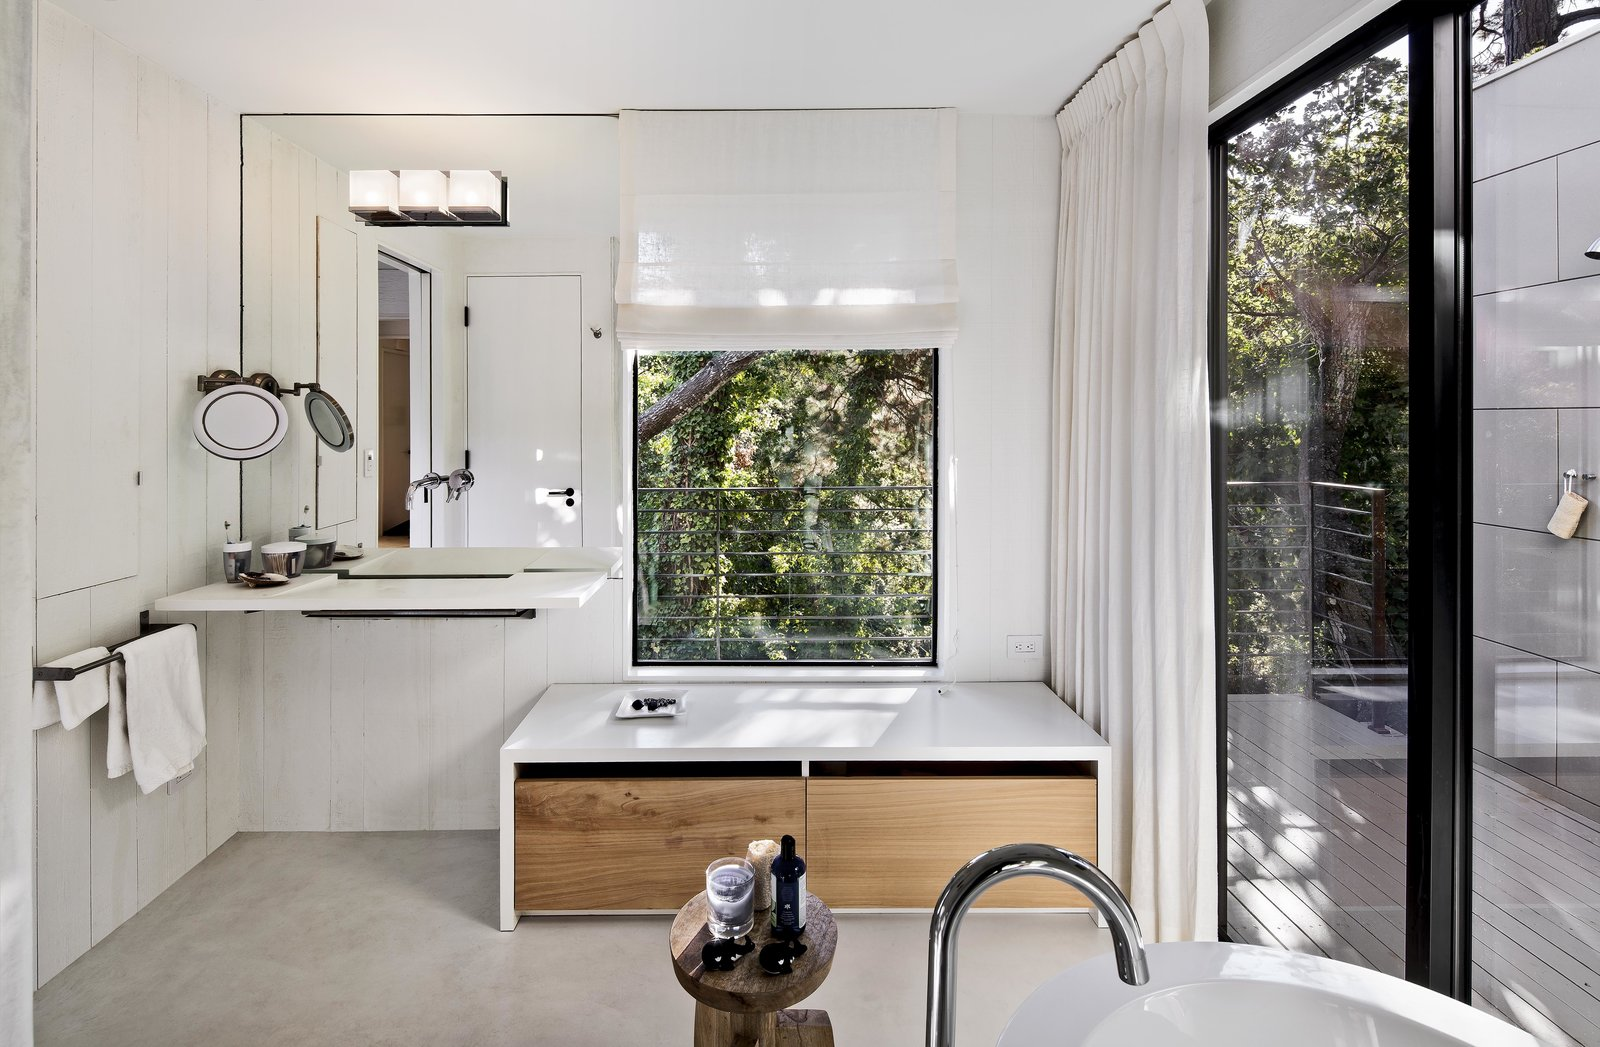 The updated master bathroom features white concrete floors, painted wood walls, and veneer plaster ceilings. Light streams in through the original window, and an added sliding door opens to an outdoor shower. A single Washplane sink by Omvivo sits beneath the mirror, with additional faucets for the shower and Duravit bathtub by Hansgrohe. A stool from Roost holds bath essentials.  Photo 5 of 10 in Bright Renovation of a 1970s Big Sur Home from Torres House